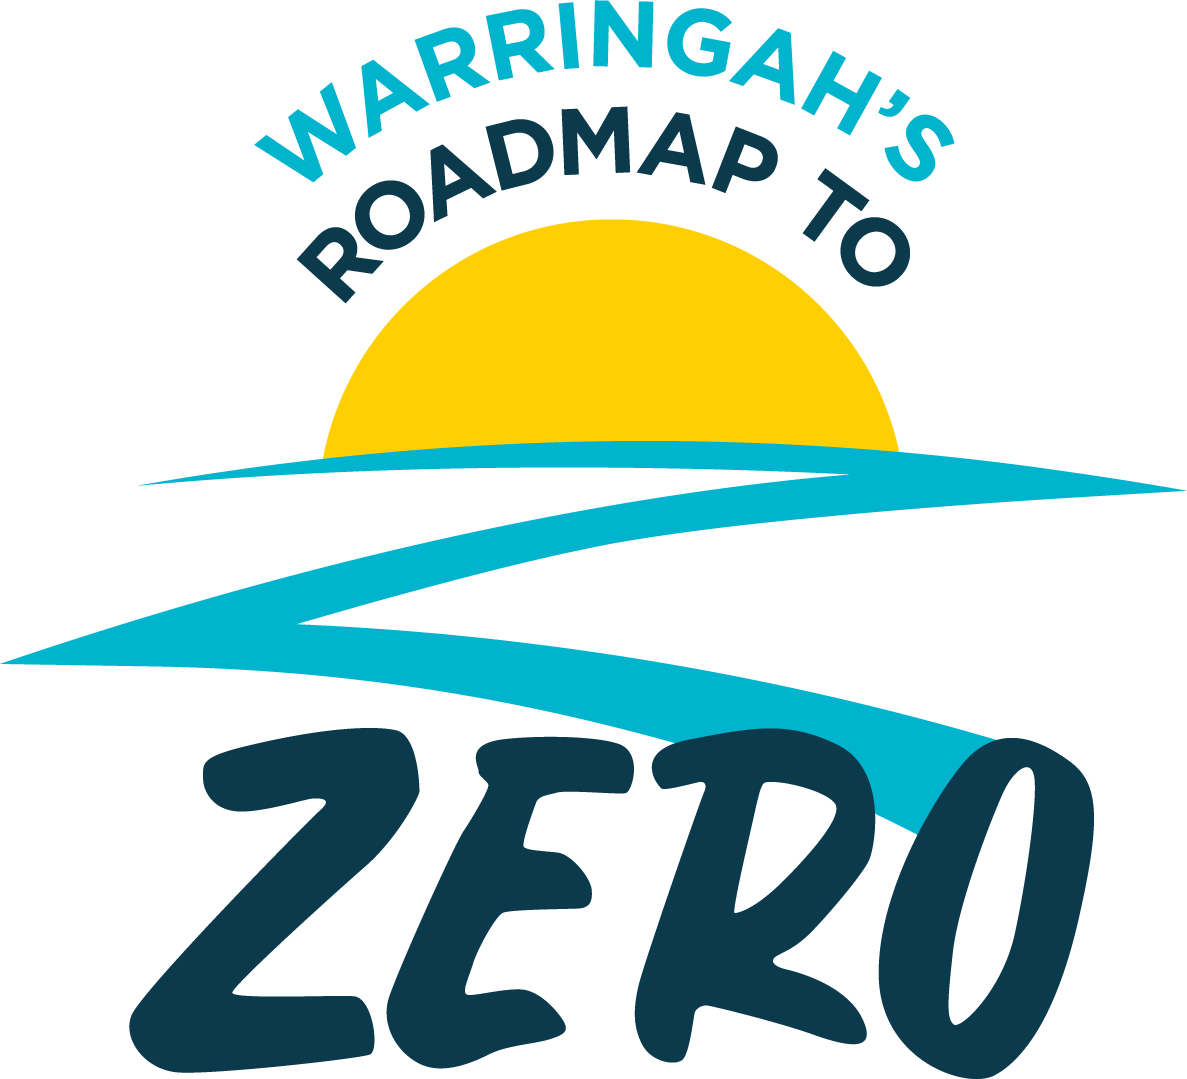 Roadmap-To-Zero logo